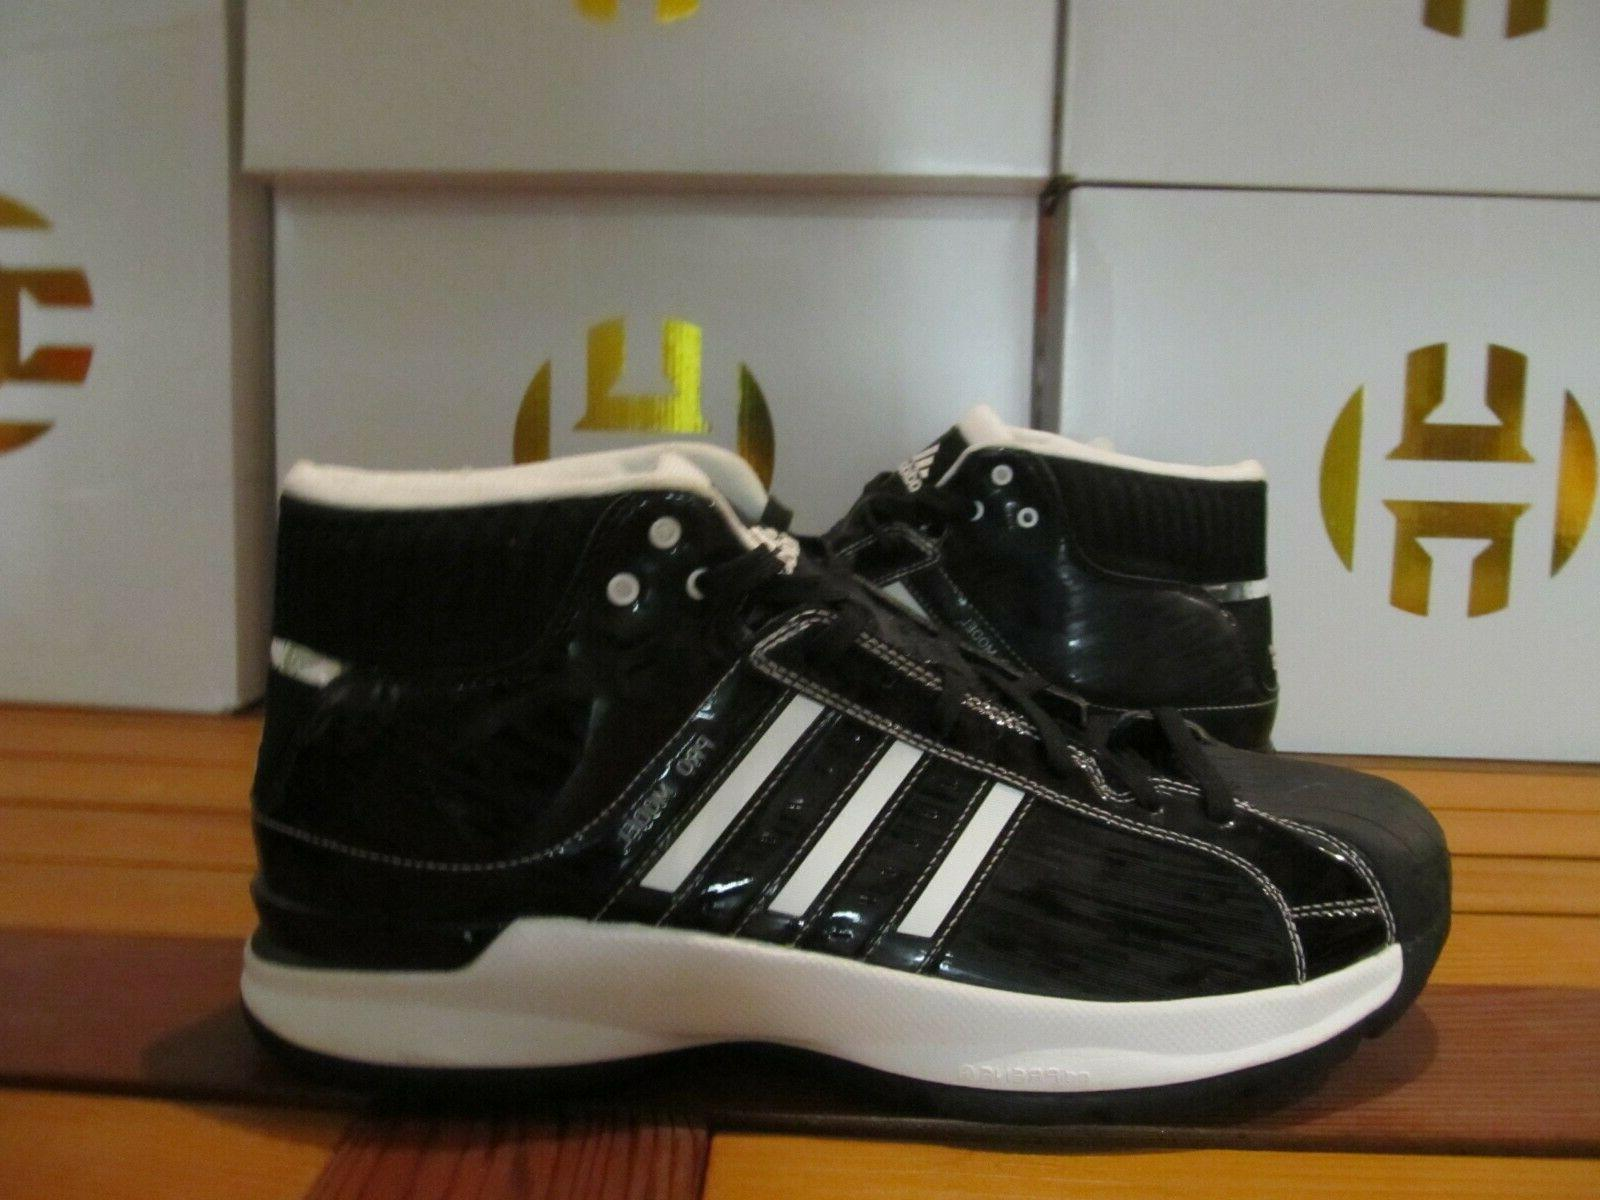 Model 08 Black PATENT LEATHER Basketball